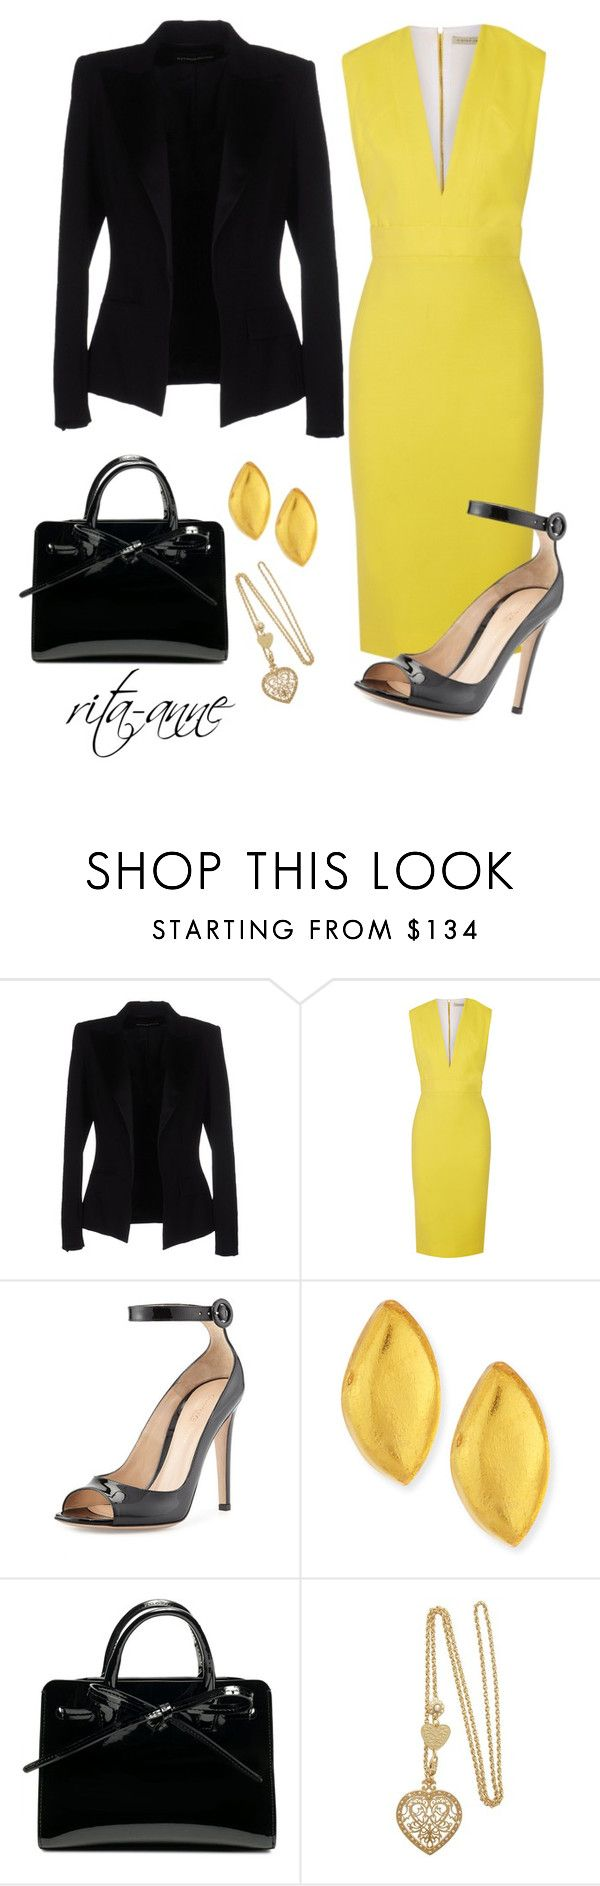 """Workplace Wardrobe"" by rita-anne ❤ liked on Polyvore featuring Alexandre Vauthier, Victoria Beckham, Gianvito Rossi and Viktoria Hayman"